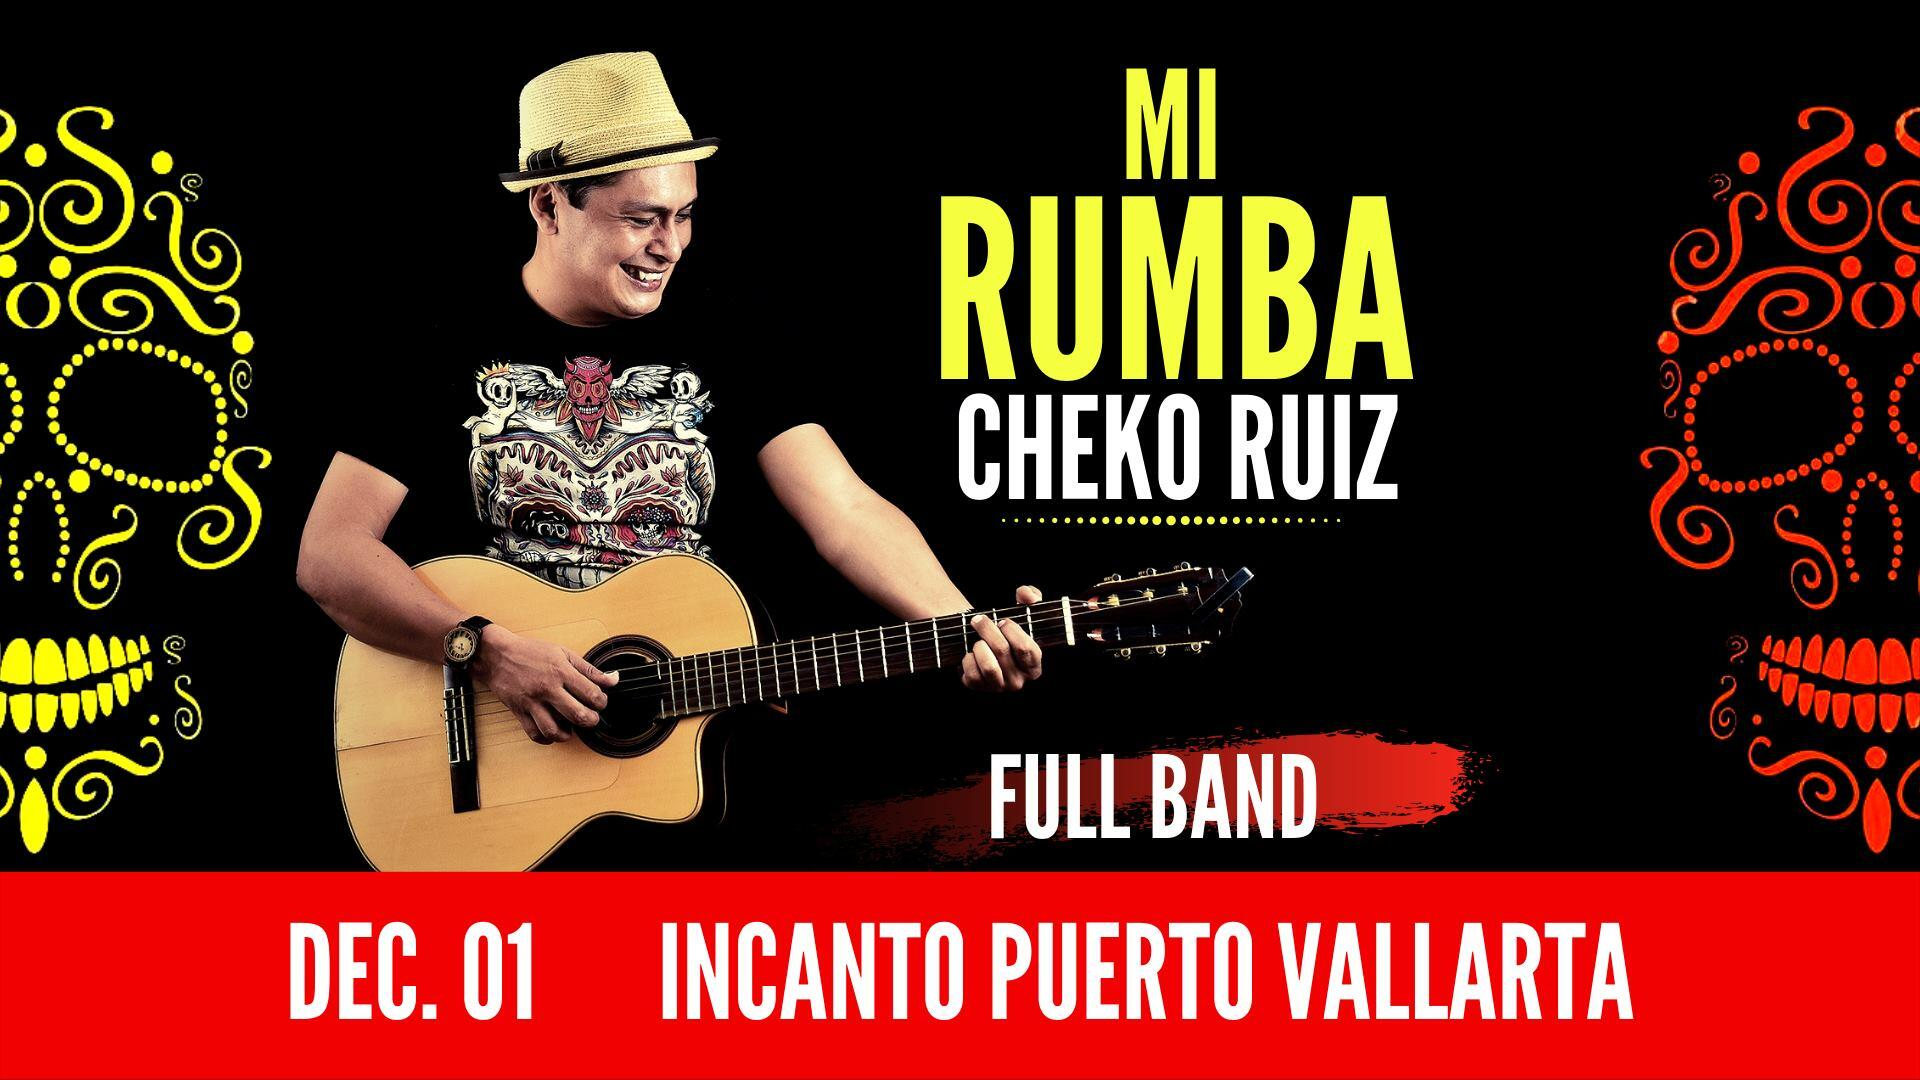 Mi Rumba - Cheko Ruiz Full Band